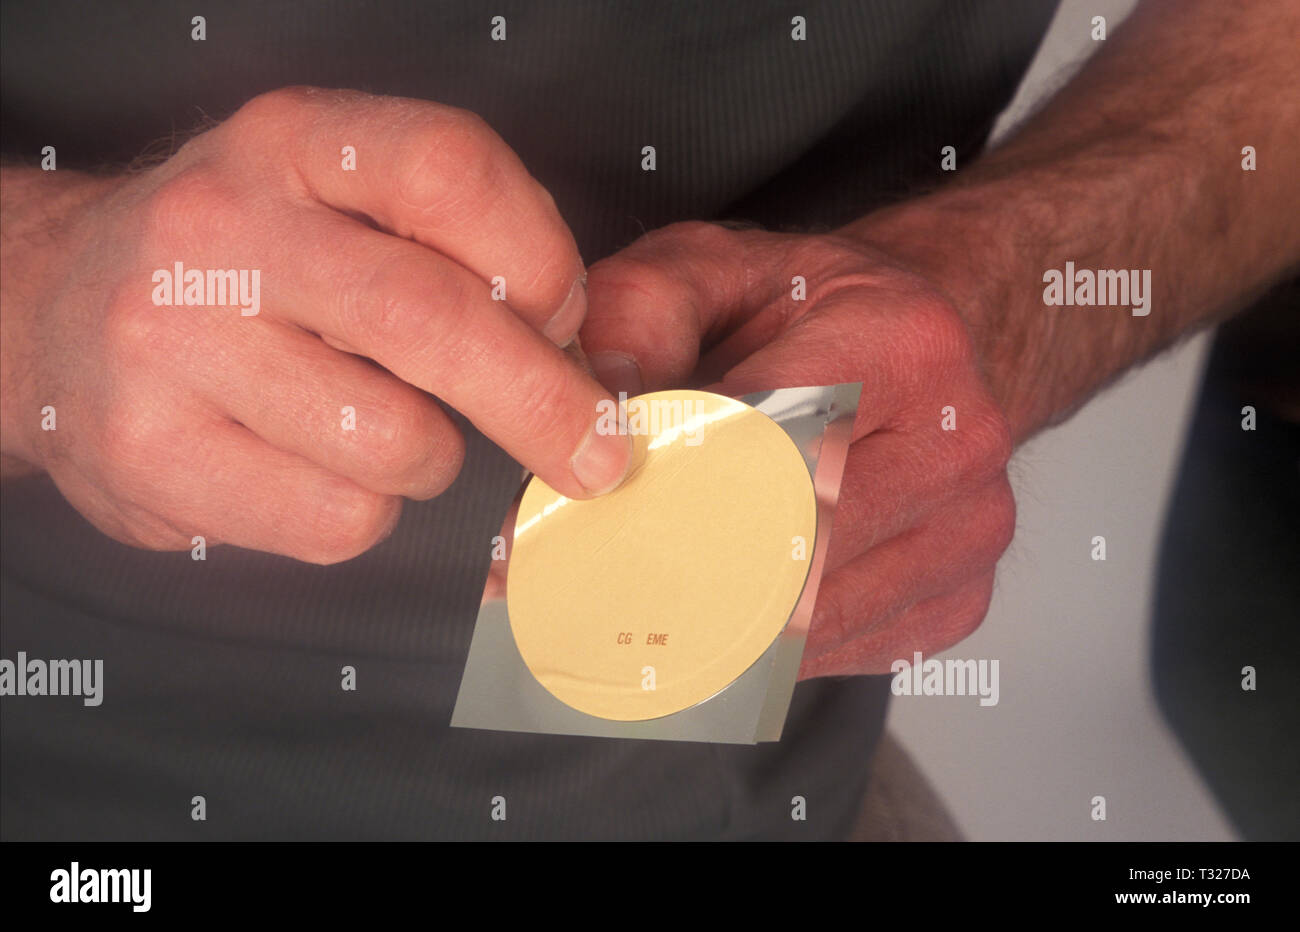 man applying nicotine patch - Stock Image